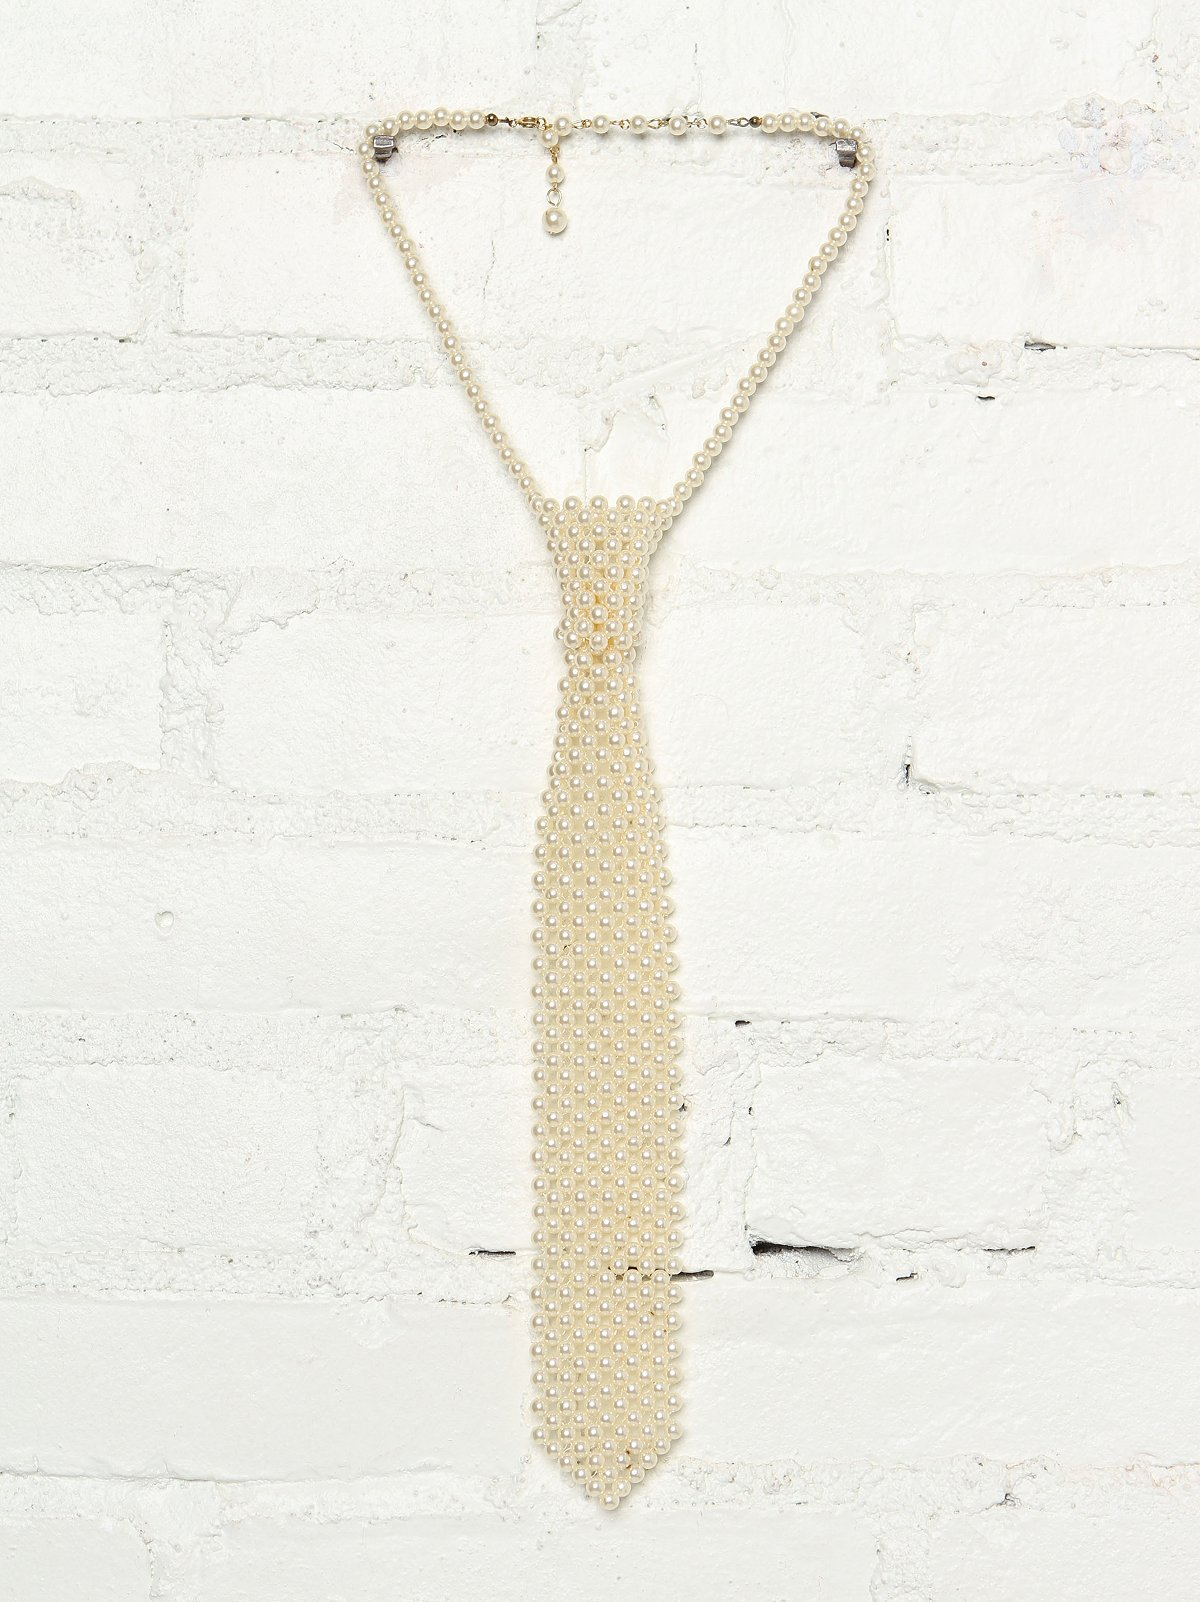 Vintage Faux Pearl Necktie Necklace